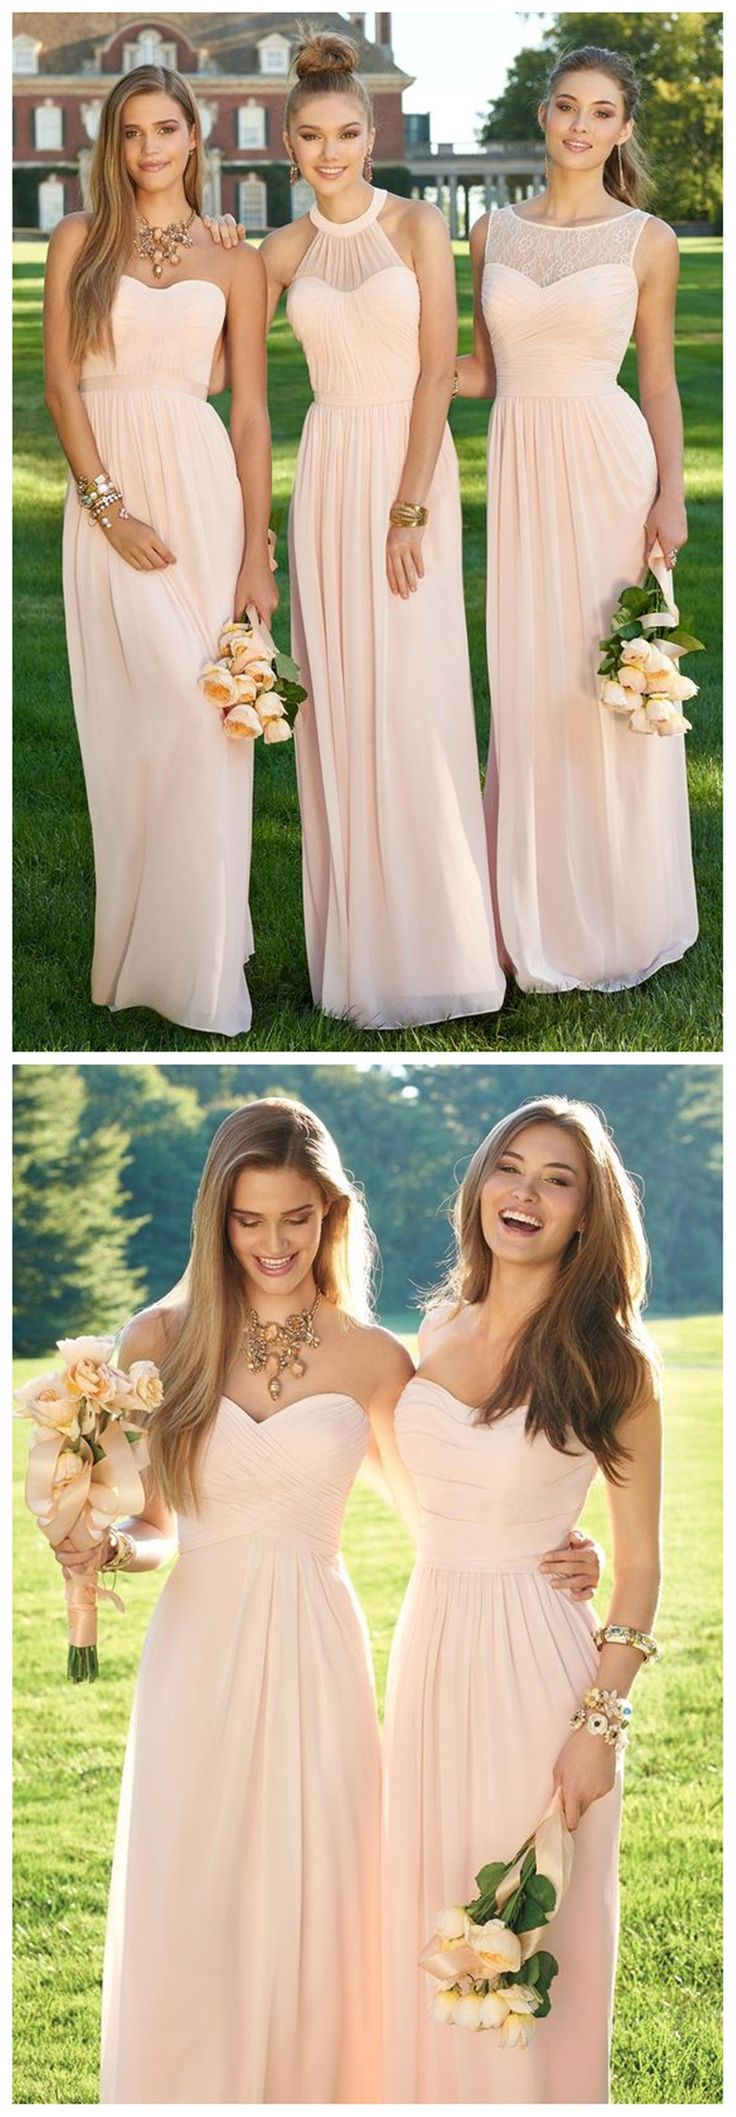 Best 25 affordable bridesmaid dresses ideas on pinterest blush pink bridesmaid dresses long bridesmaid dresses custom bridesmaid dresses cheap bridesmaid dress ombrellifo Image collections